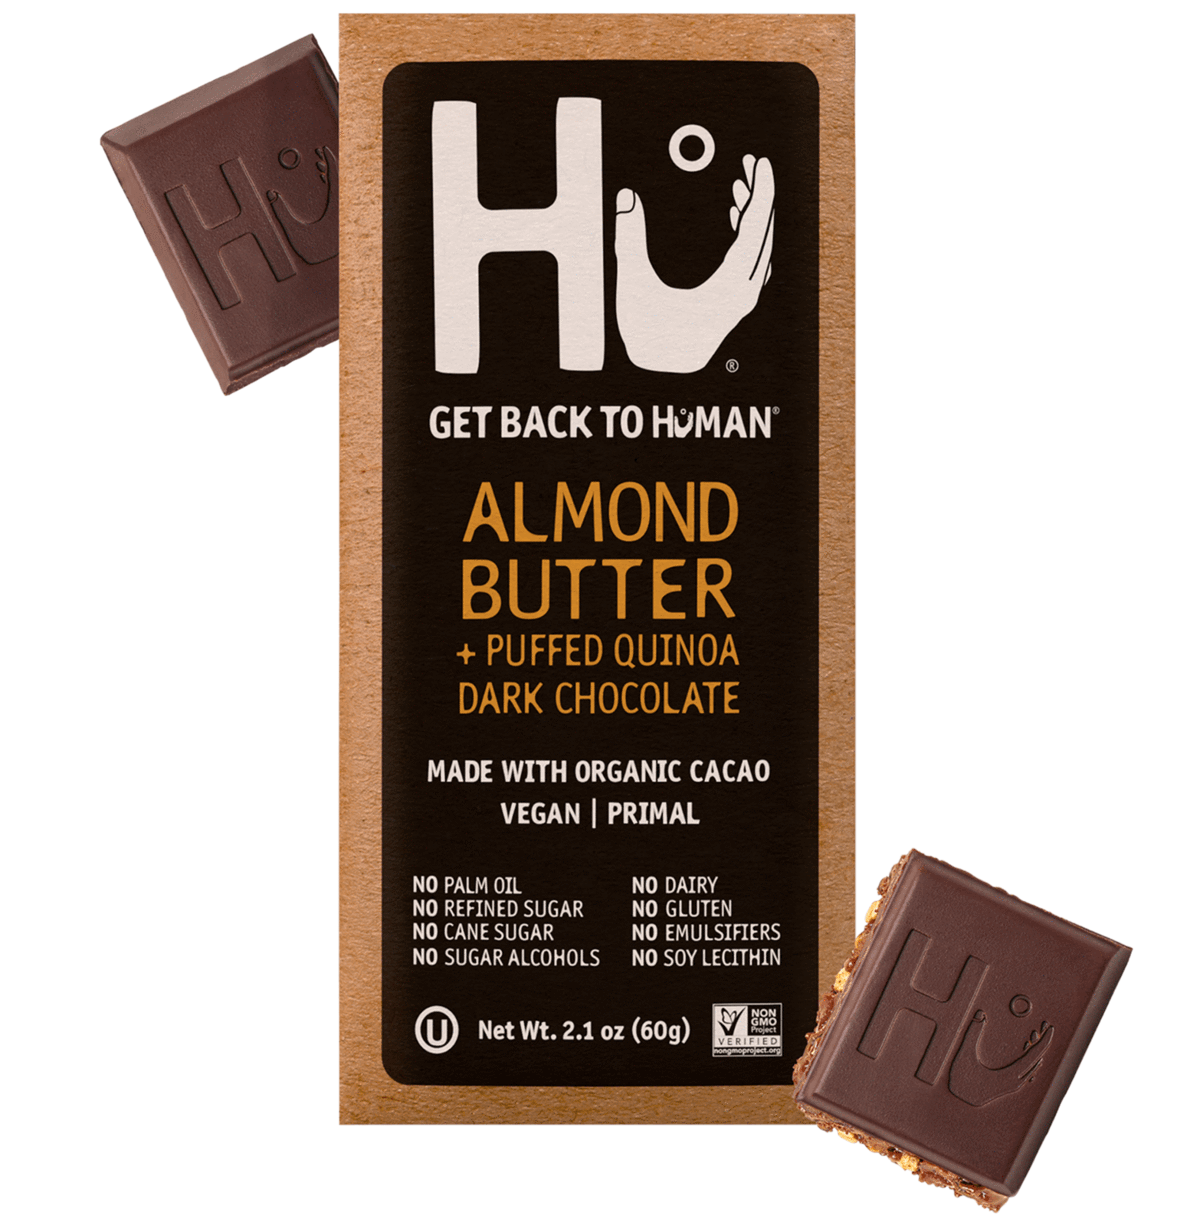 HU Vanilla Almond Butter and Puffed Quinoa Dark Chocolate